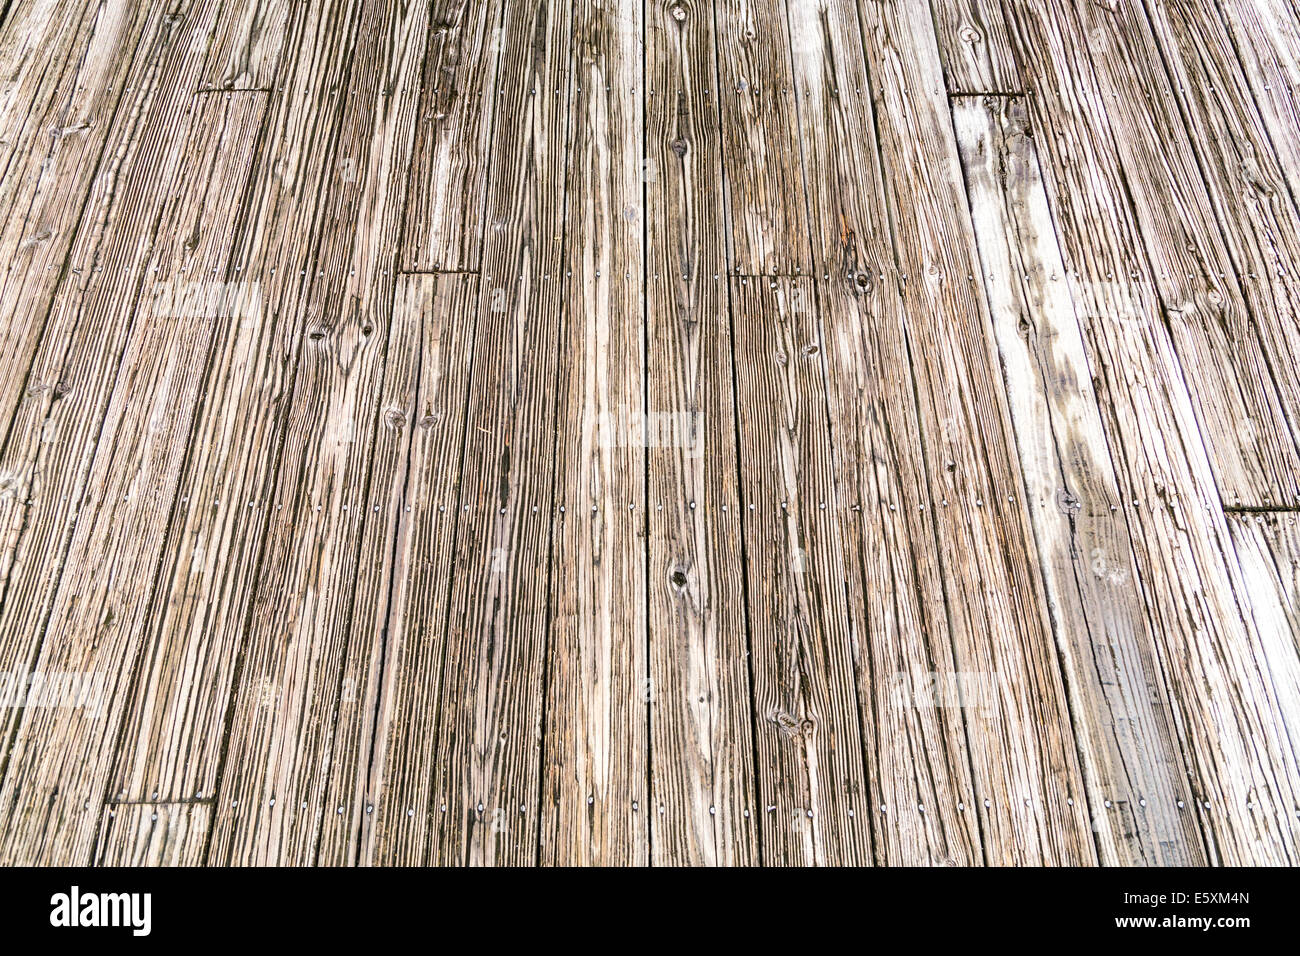 Grainy Wood Texture Stock Photo 72501317